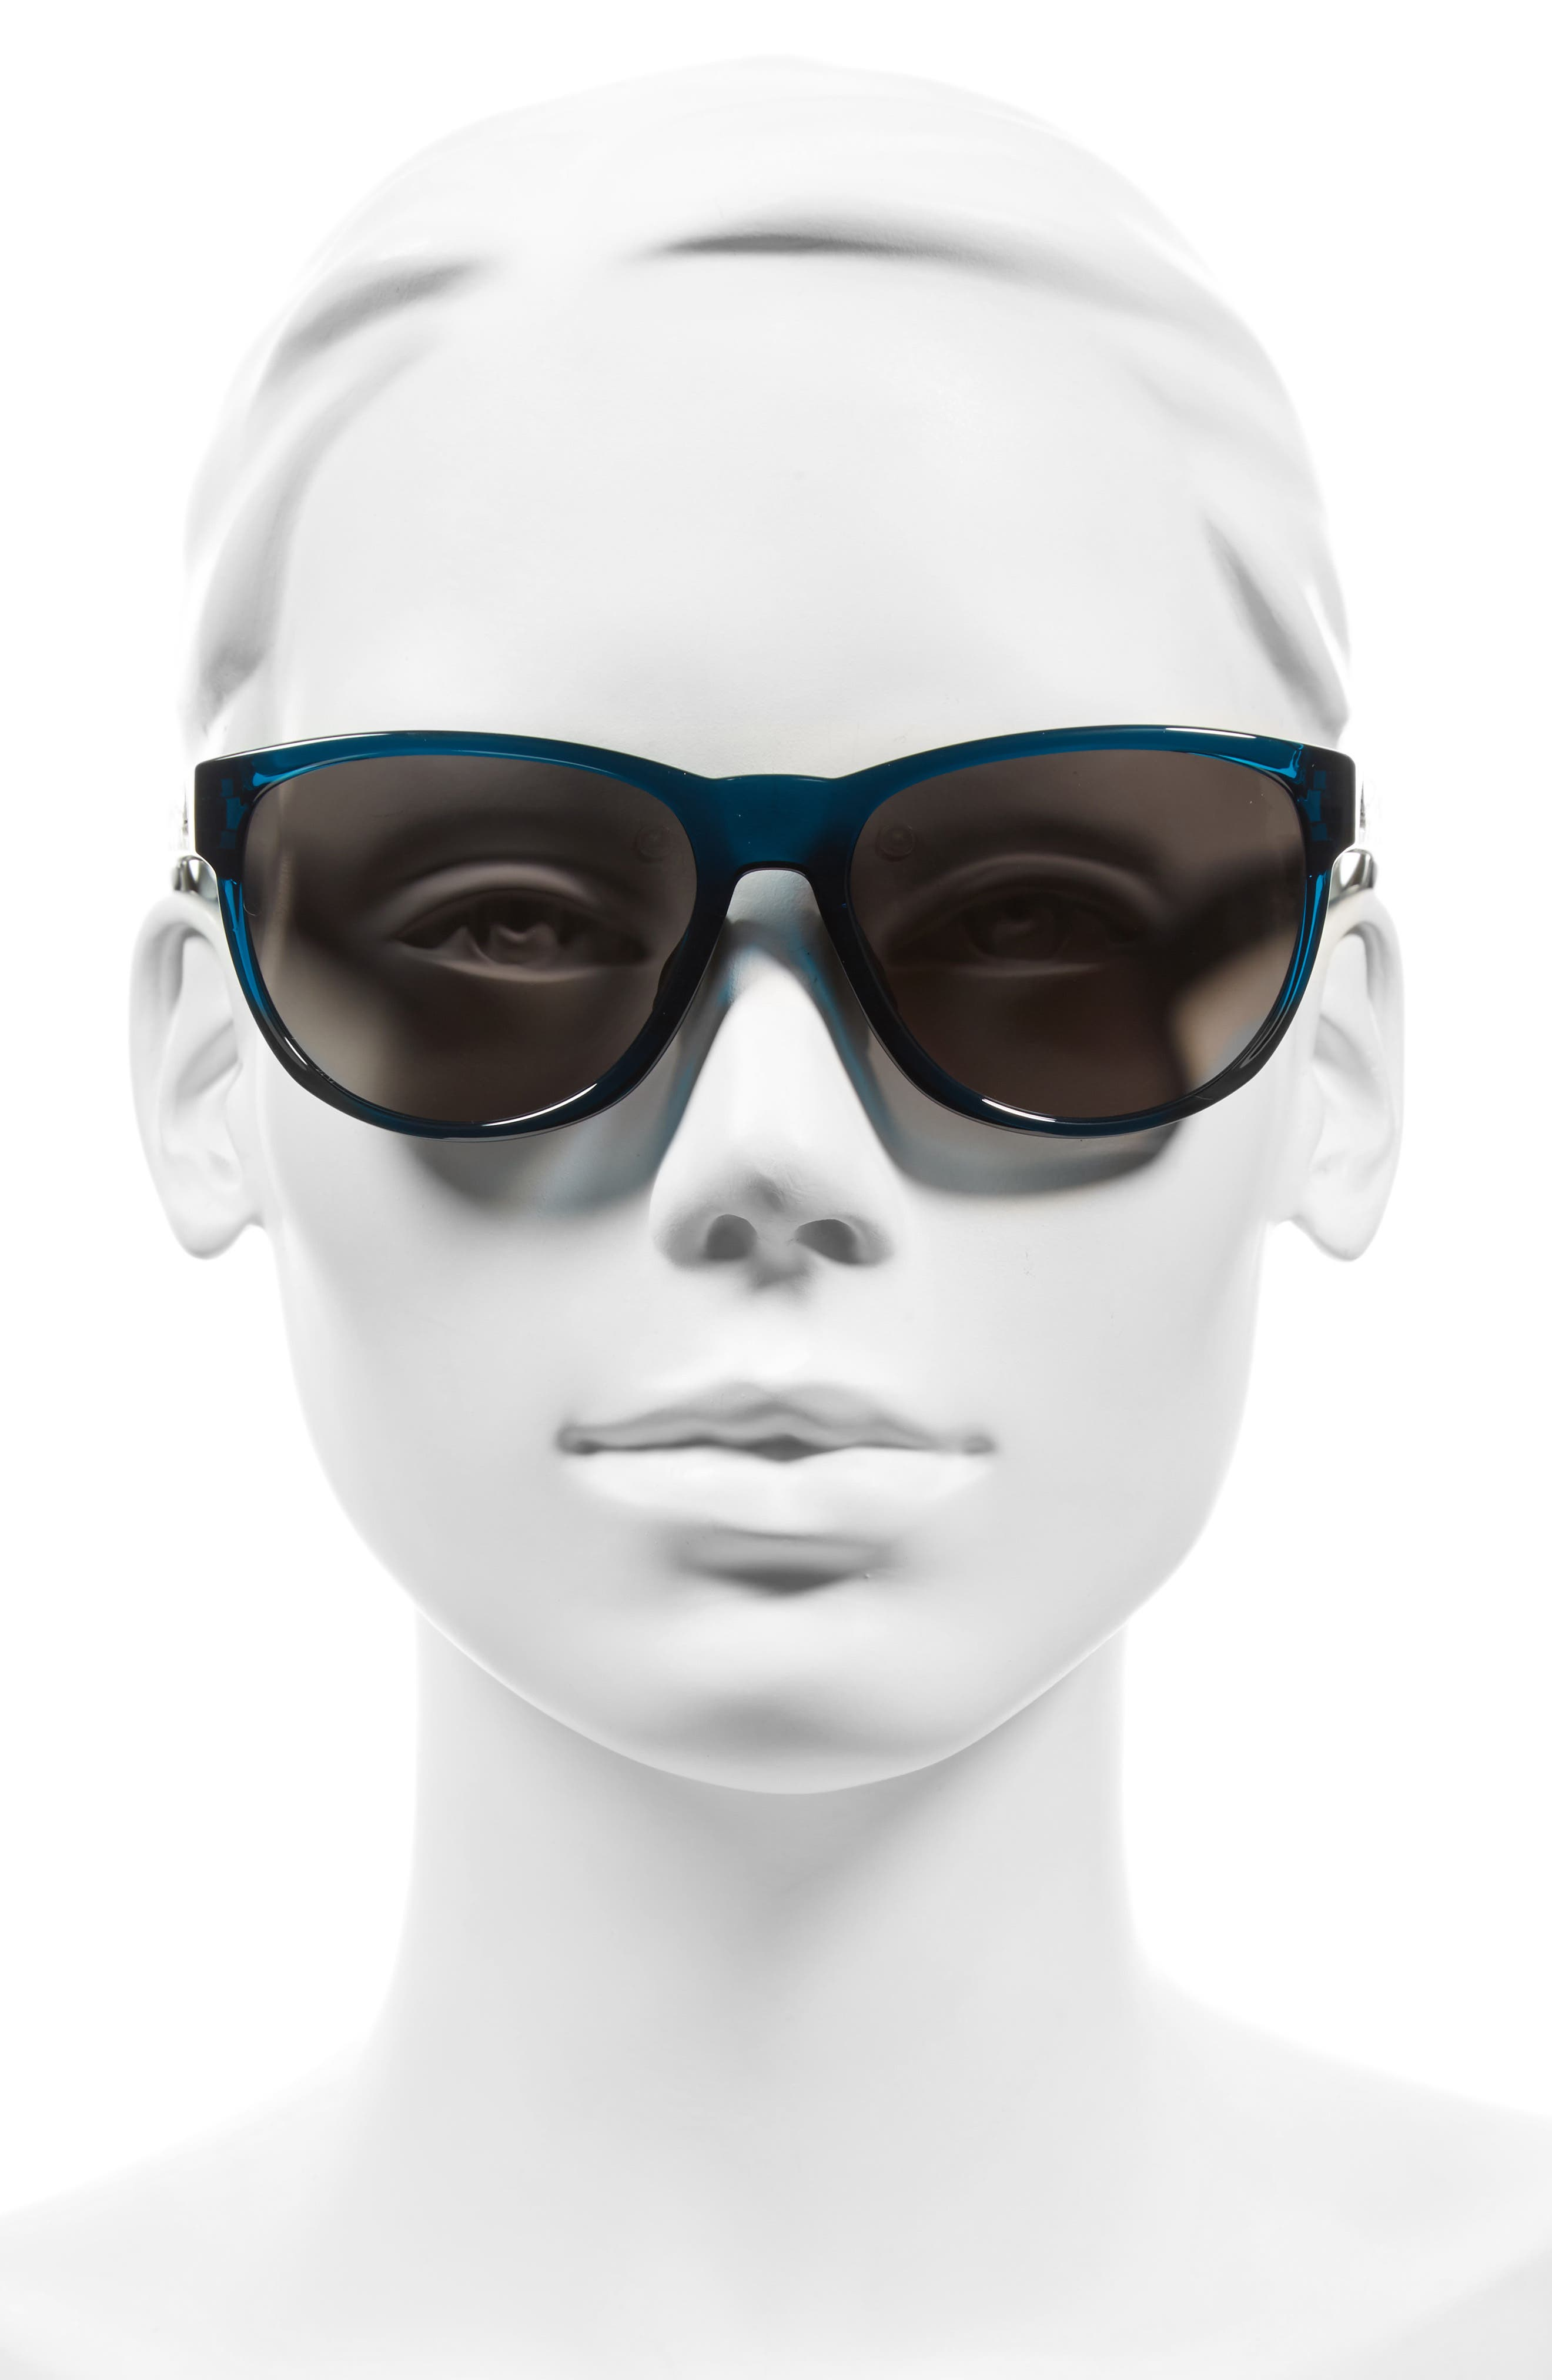 Wildcharge 61mm Mirrored Sunglasses,                             Alternate thumbnail 2, color,                             400